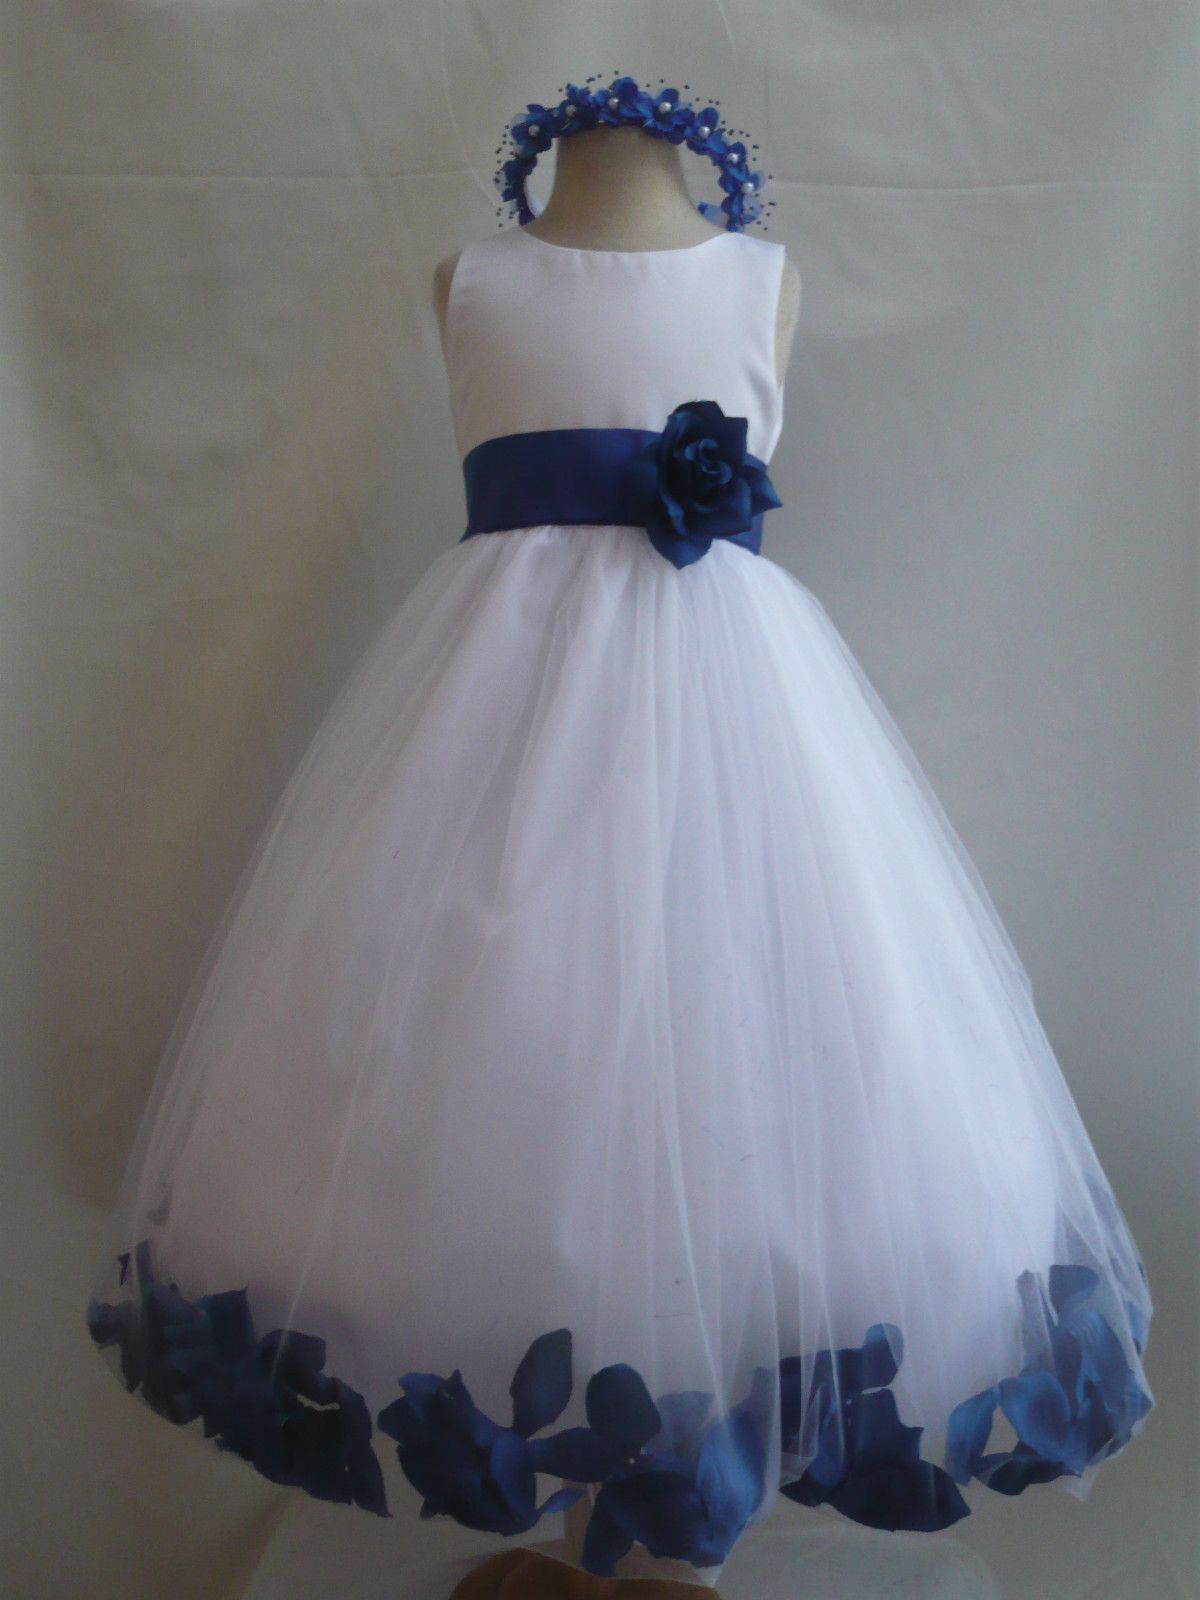 276b586df672c3 NWT WHITE ROYAL BLUE WEDDING FLOWER GIRL DRESSES 6-12-18-24MO 2 4 6 8 10 12  14